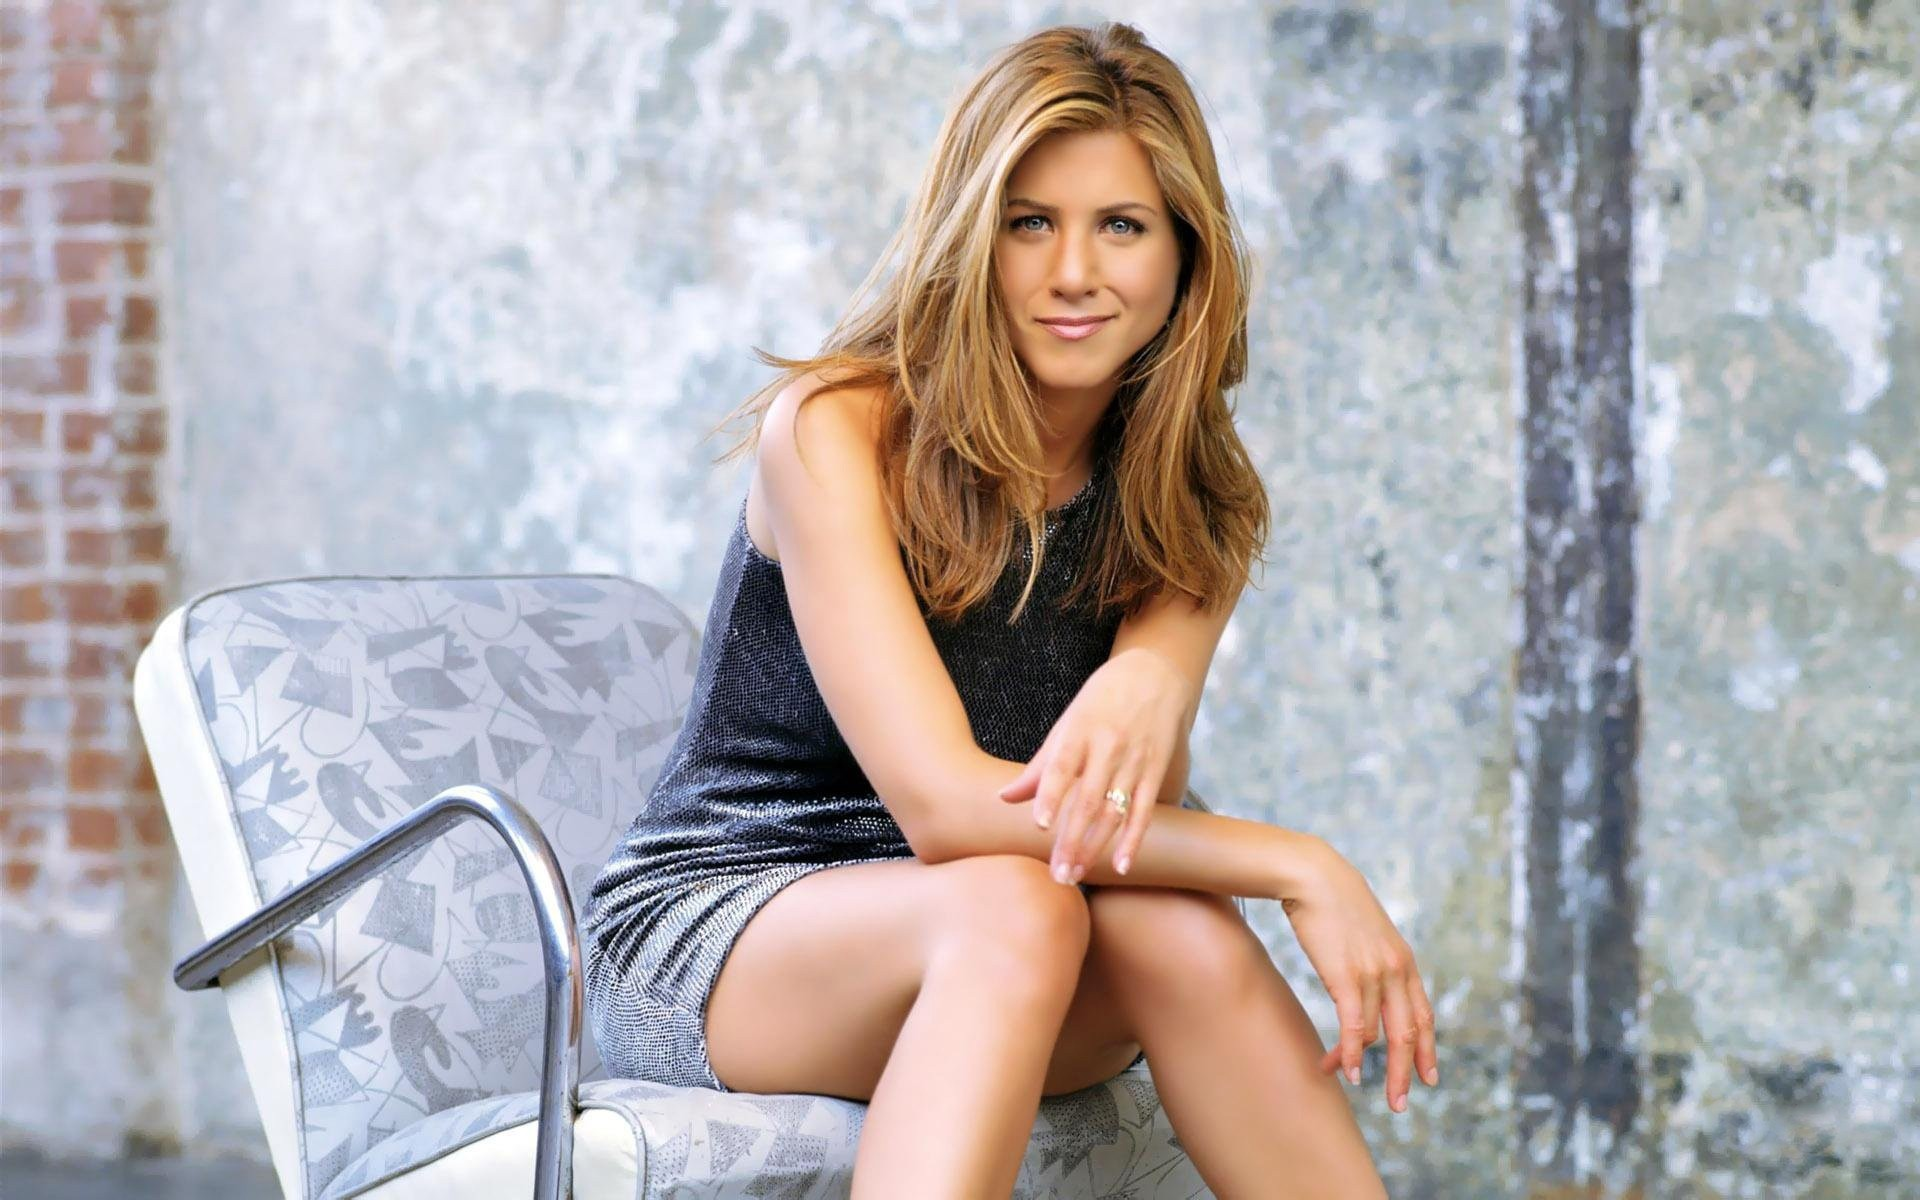 People 1920x1200 women Jennifer Aniston actress brunette smiling sitting grey dress legs together looking at viewer